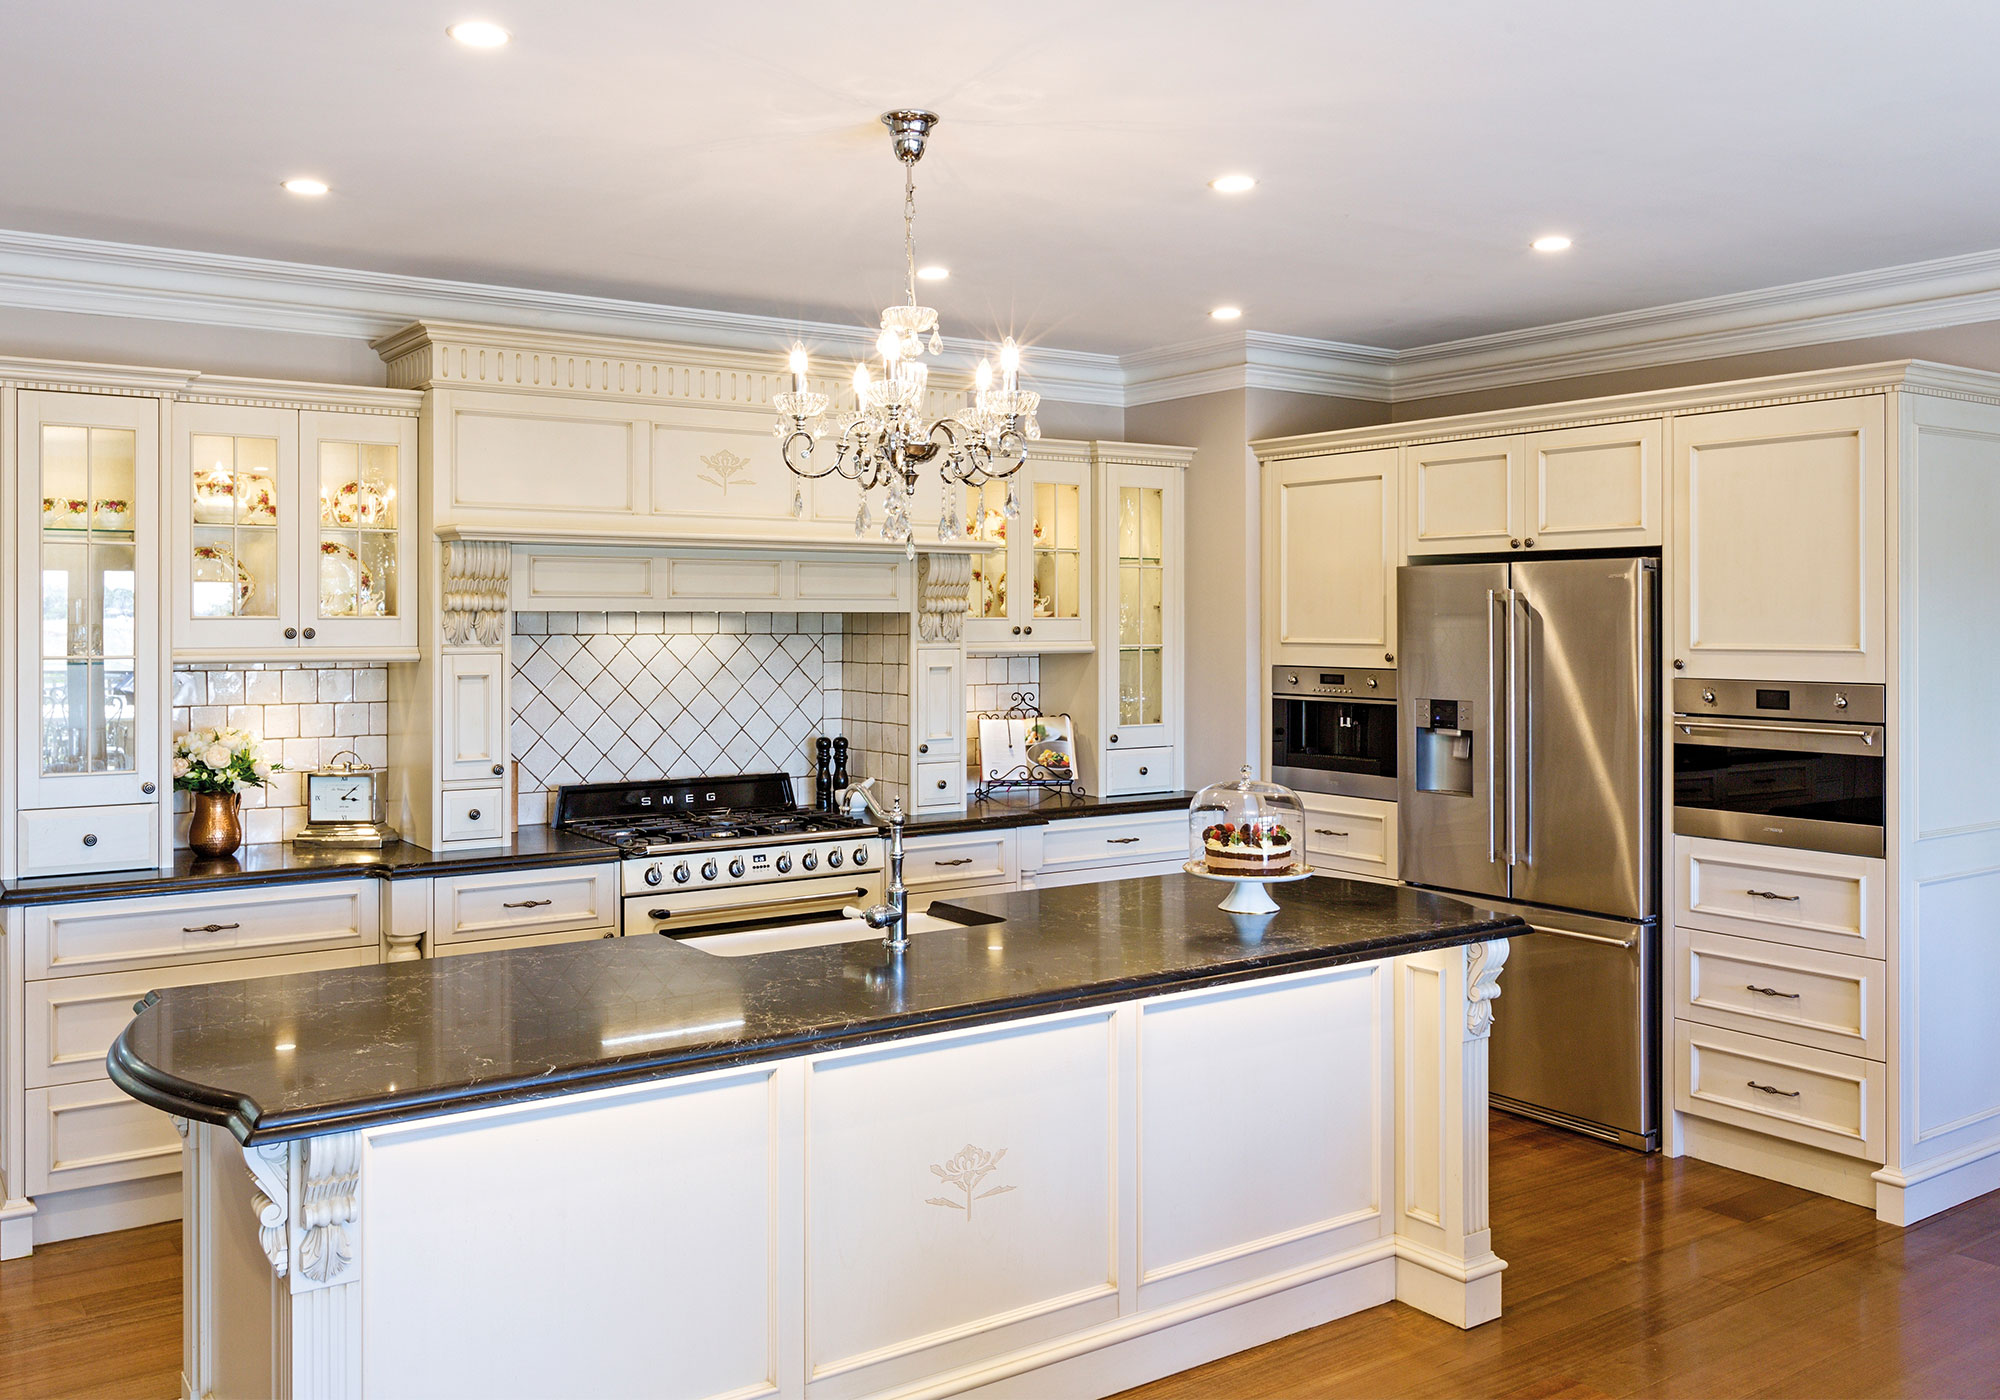 Victoria\'s Award Winning Country Kitchen Specialists - View ...